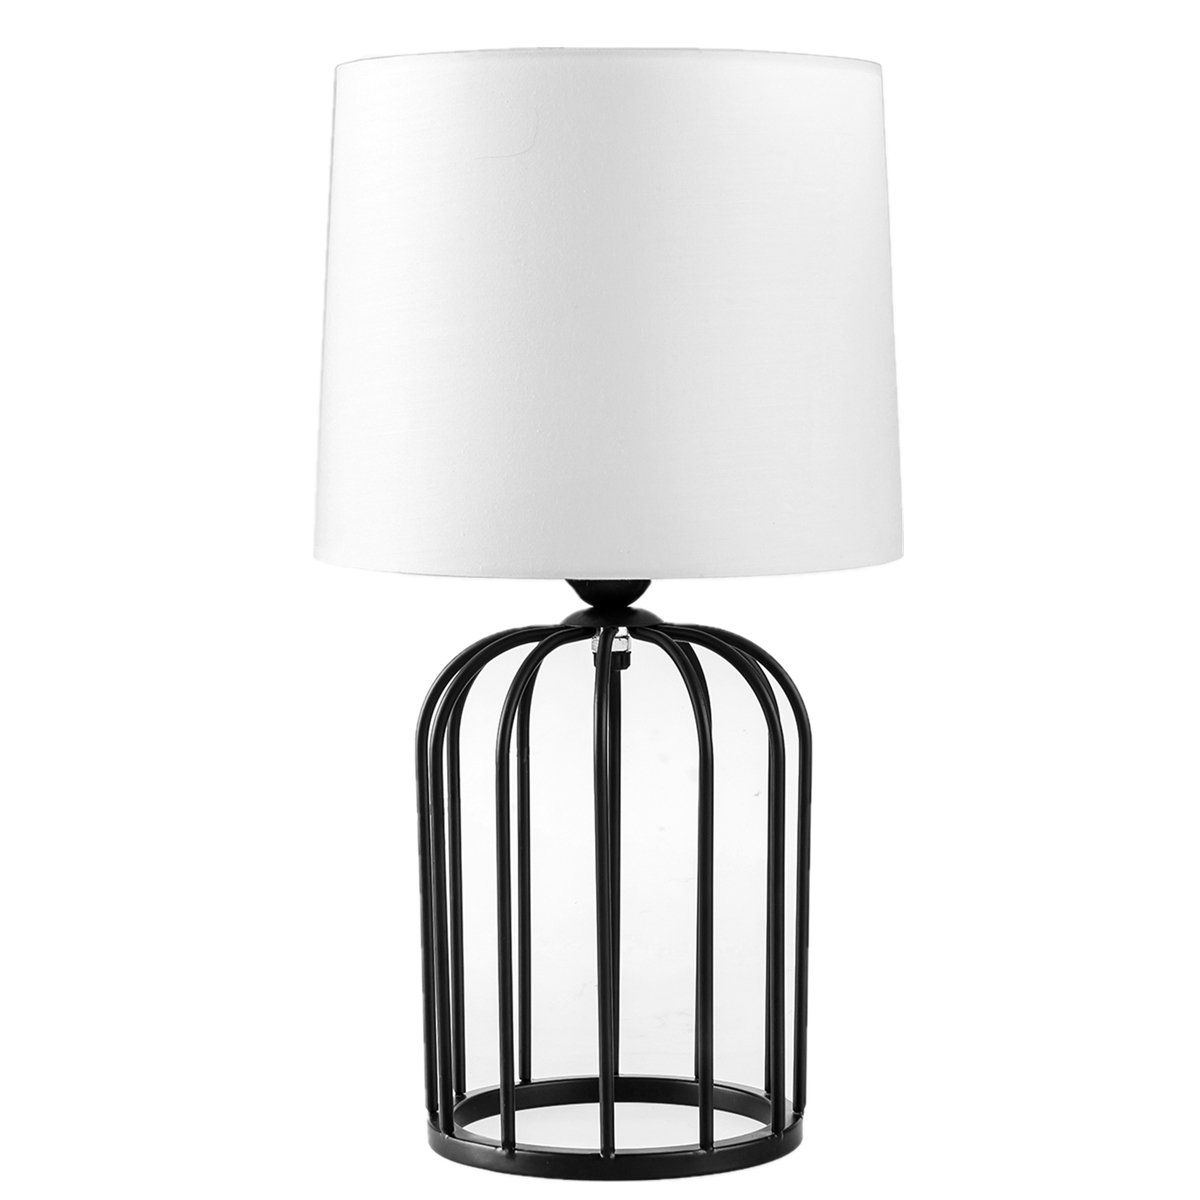 Bedside Lamp Morden Minimalist Black Metal Bird Cage With White Fabric Table Lamp Hollow Out Base With White Shade Read More R Lamp Metal Birds Bedside Lamp